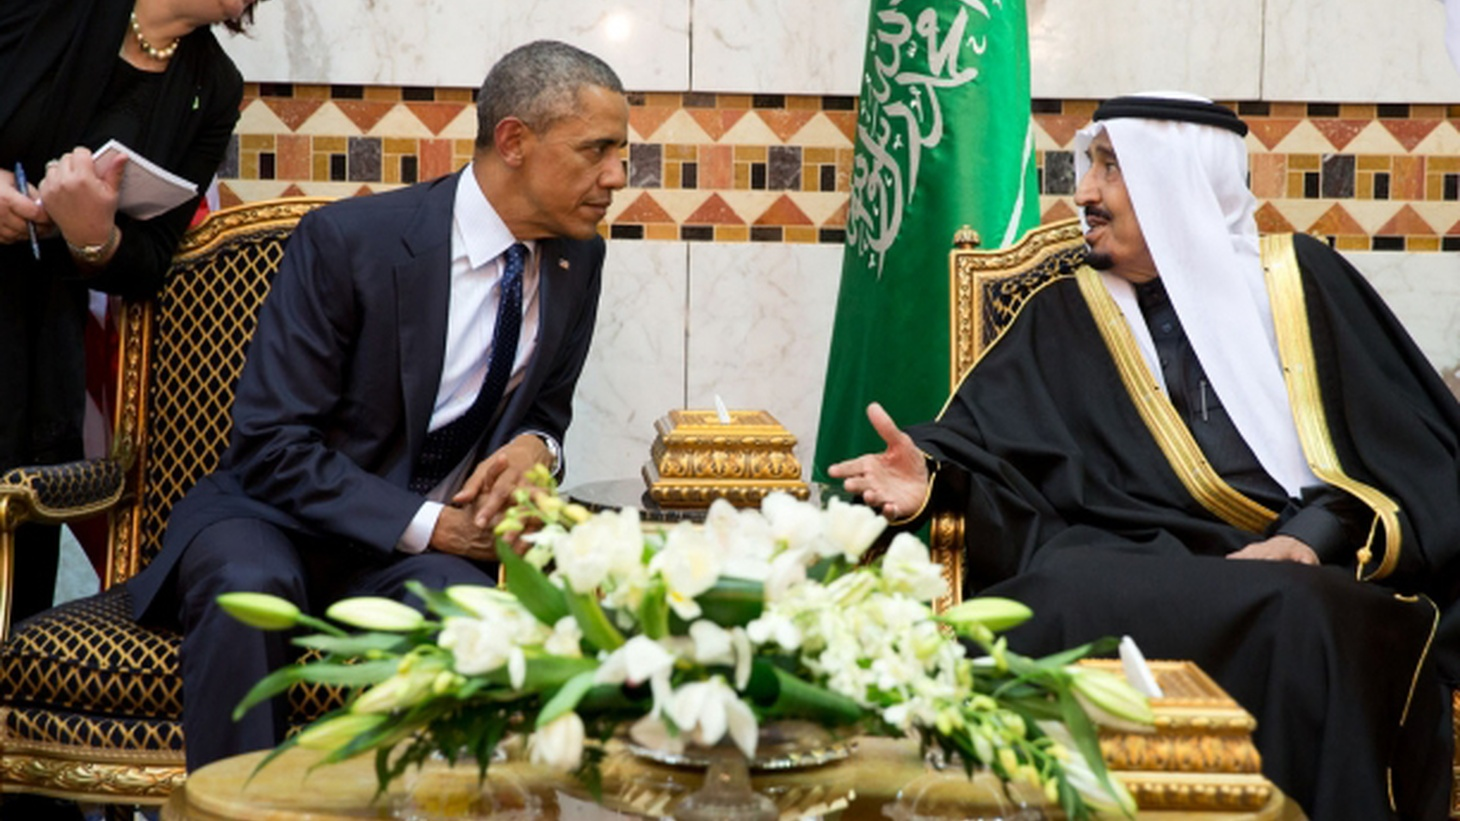 """Israel's not the only American ally worried about a US nuclear deal with Iran. Saudi Arabia and other Arab Gulf States won't be sending their most senior leaders to what was hailed as a historic """"summit"""" with President Obama this week at Camp David."""